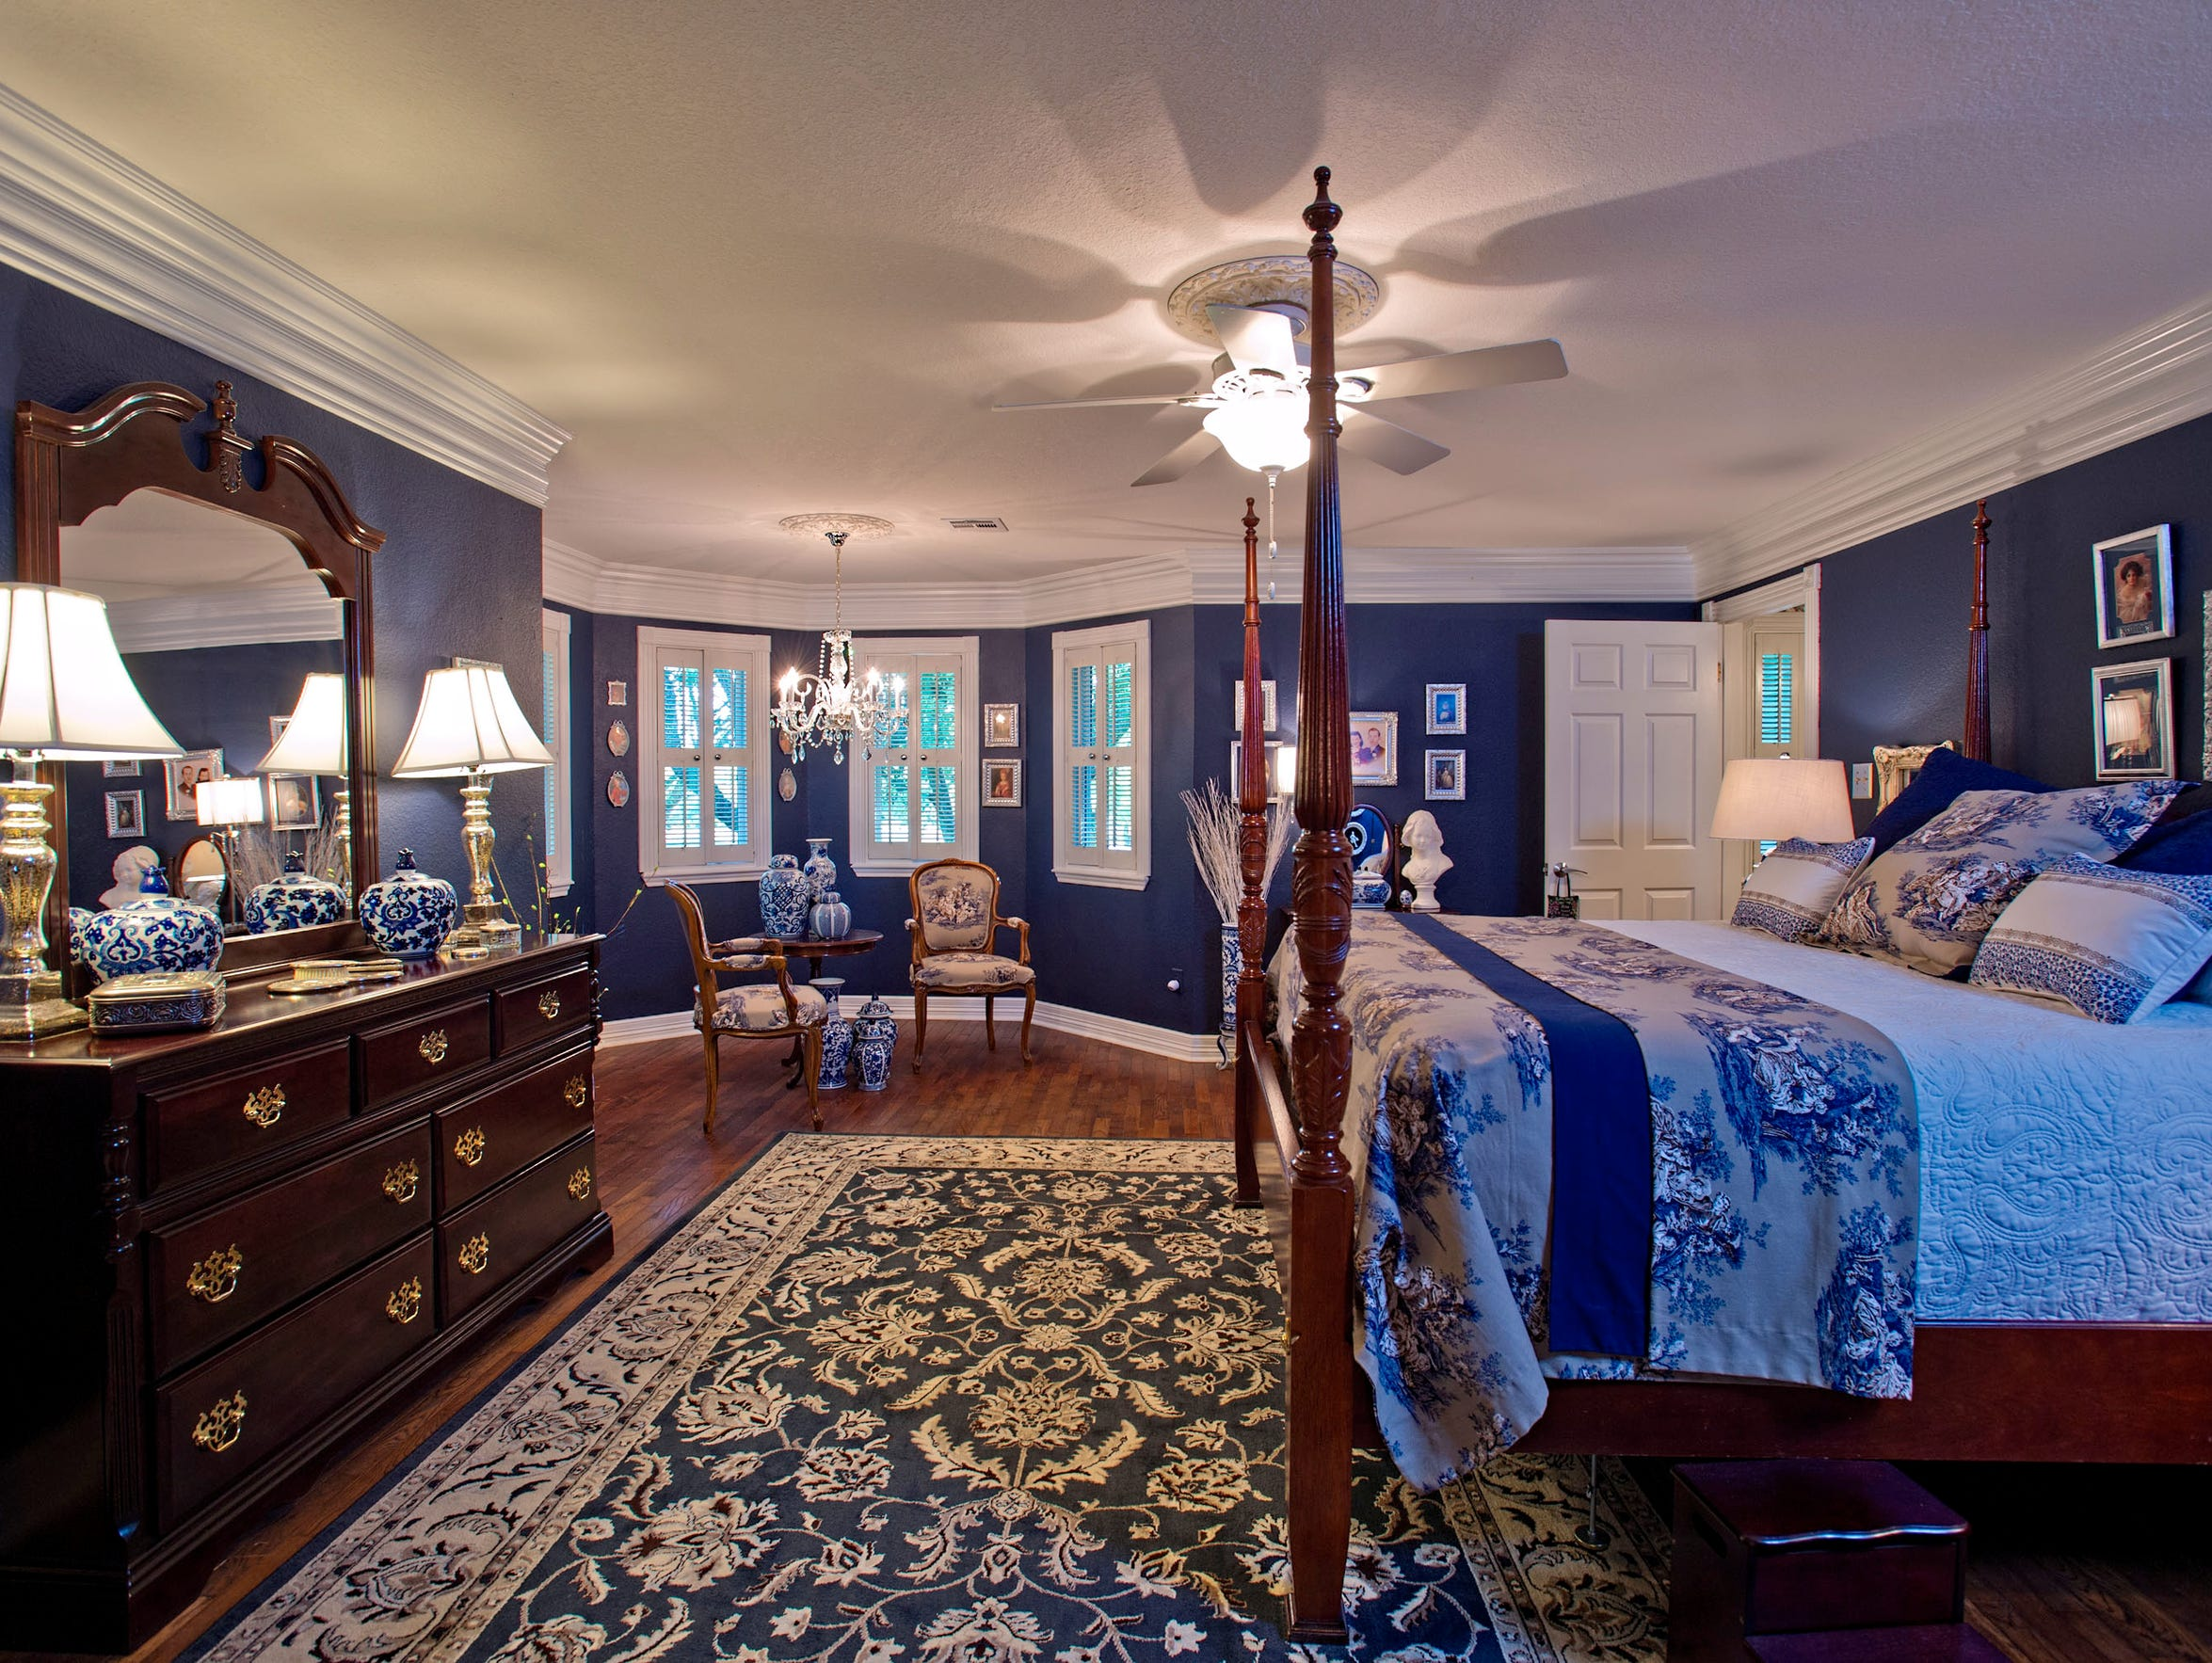 The master bedroom includes a cozy bay window sitting